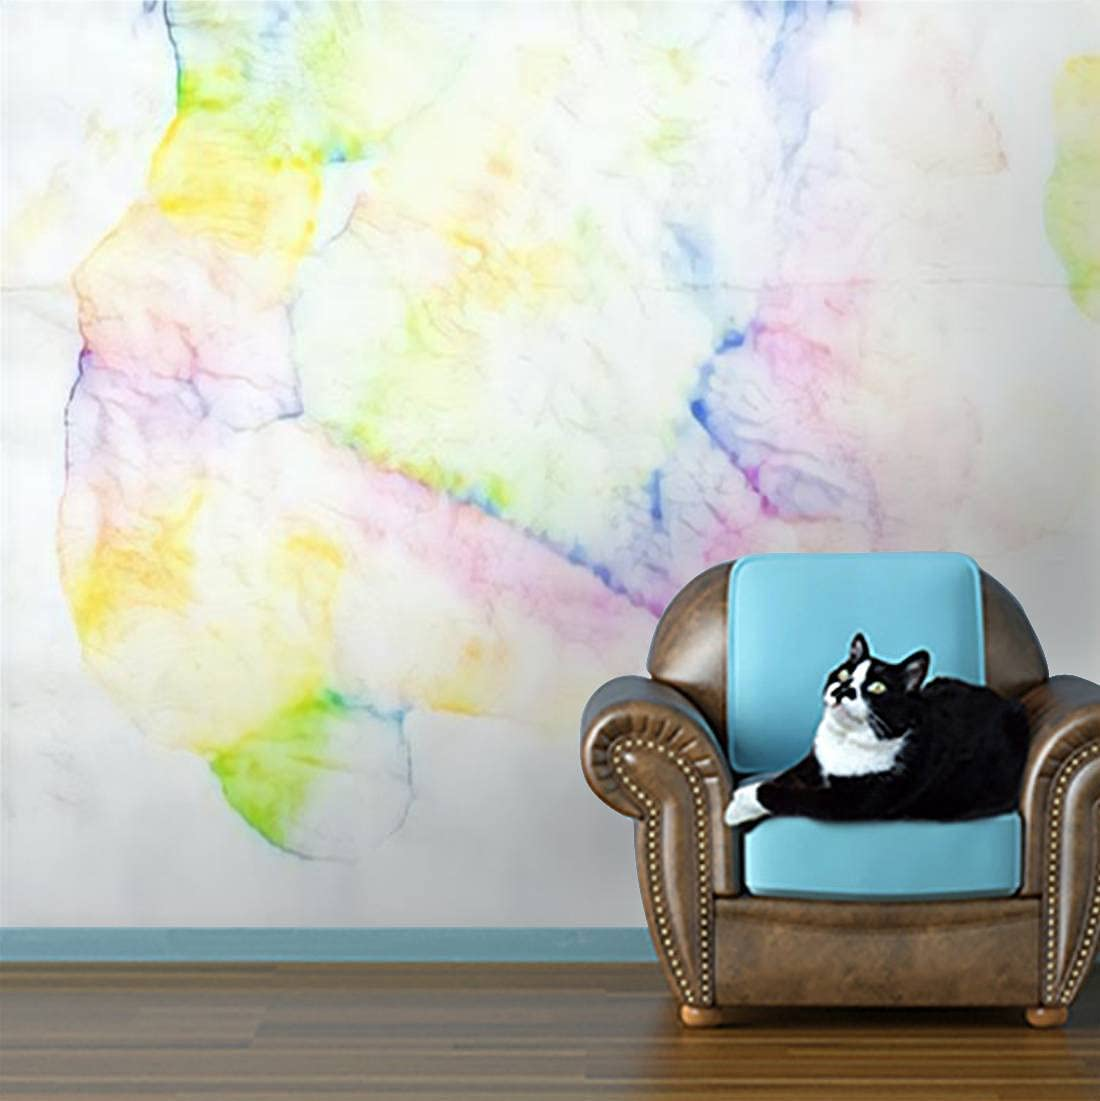 Wallpaper Popular standard Rainbow Abstract Mark Ink Stain Wash Max 55% OFF Water Effe Colour